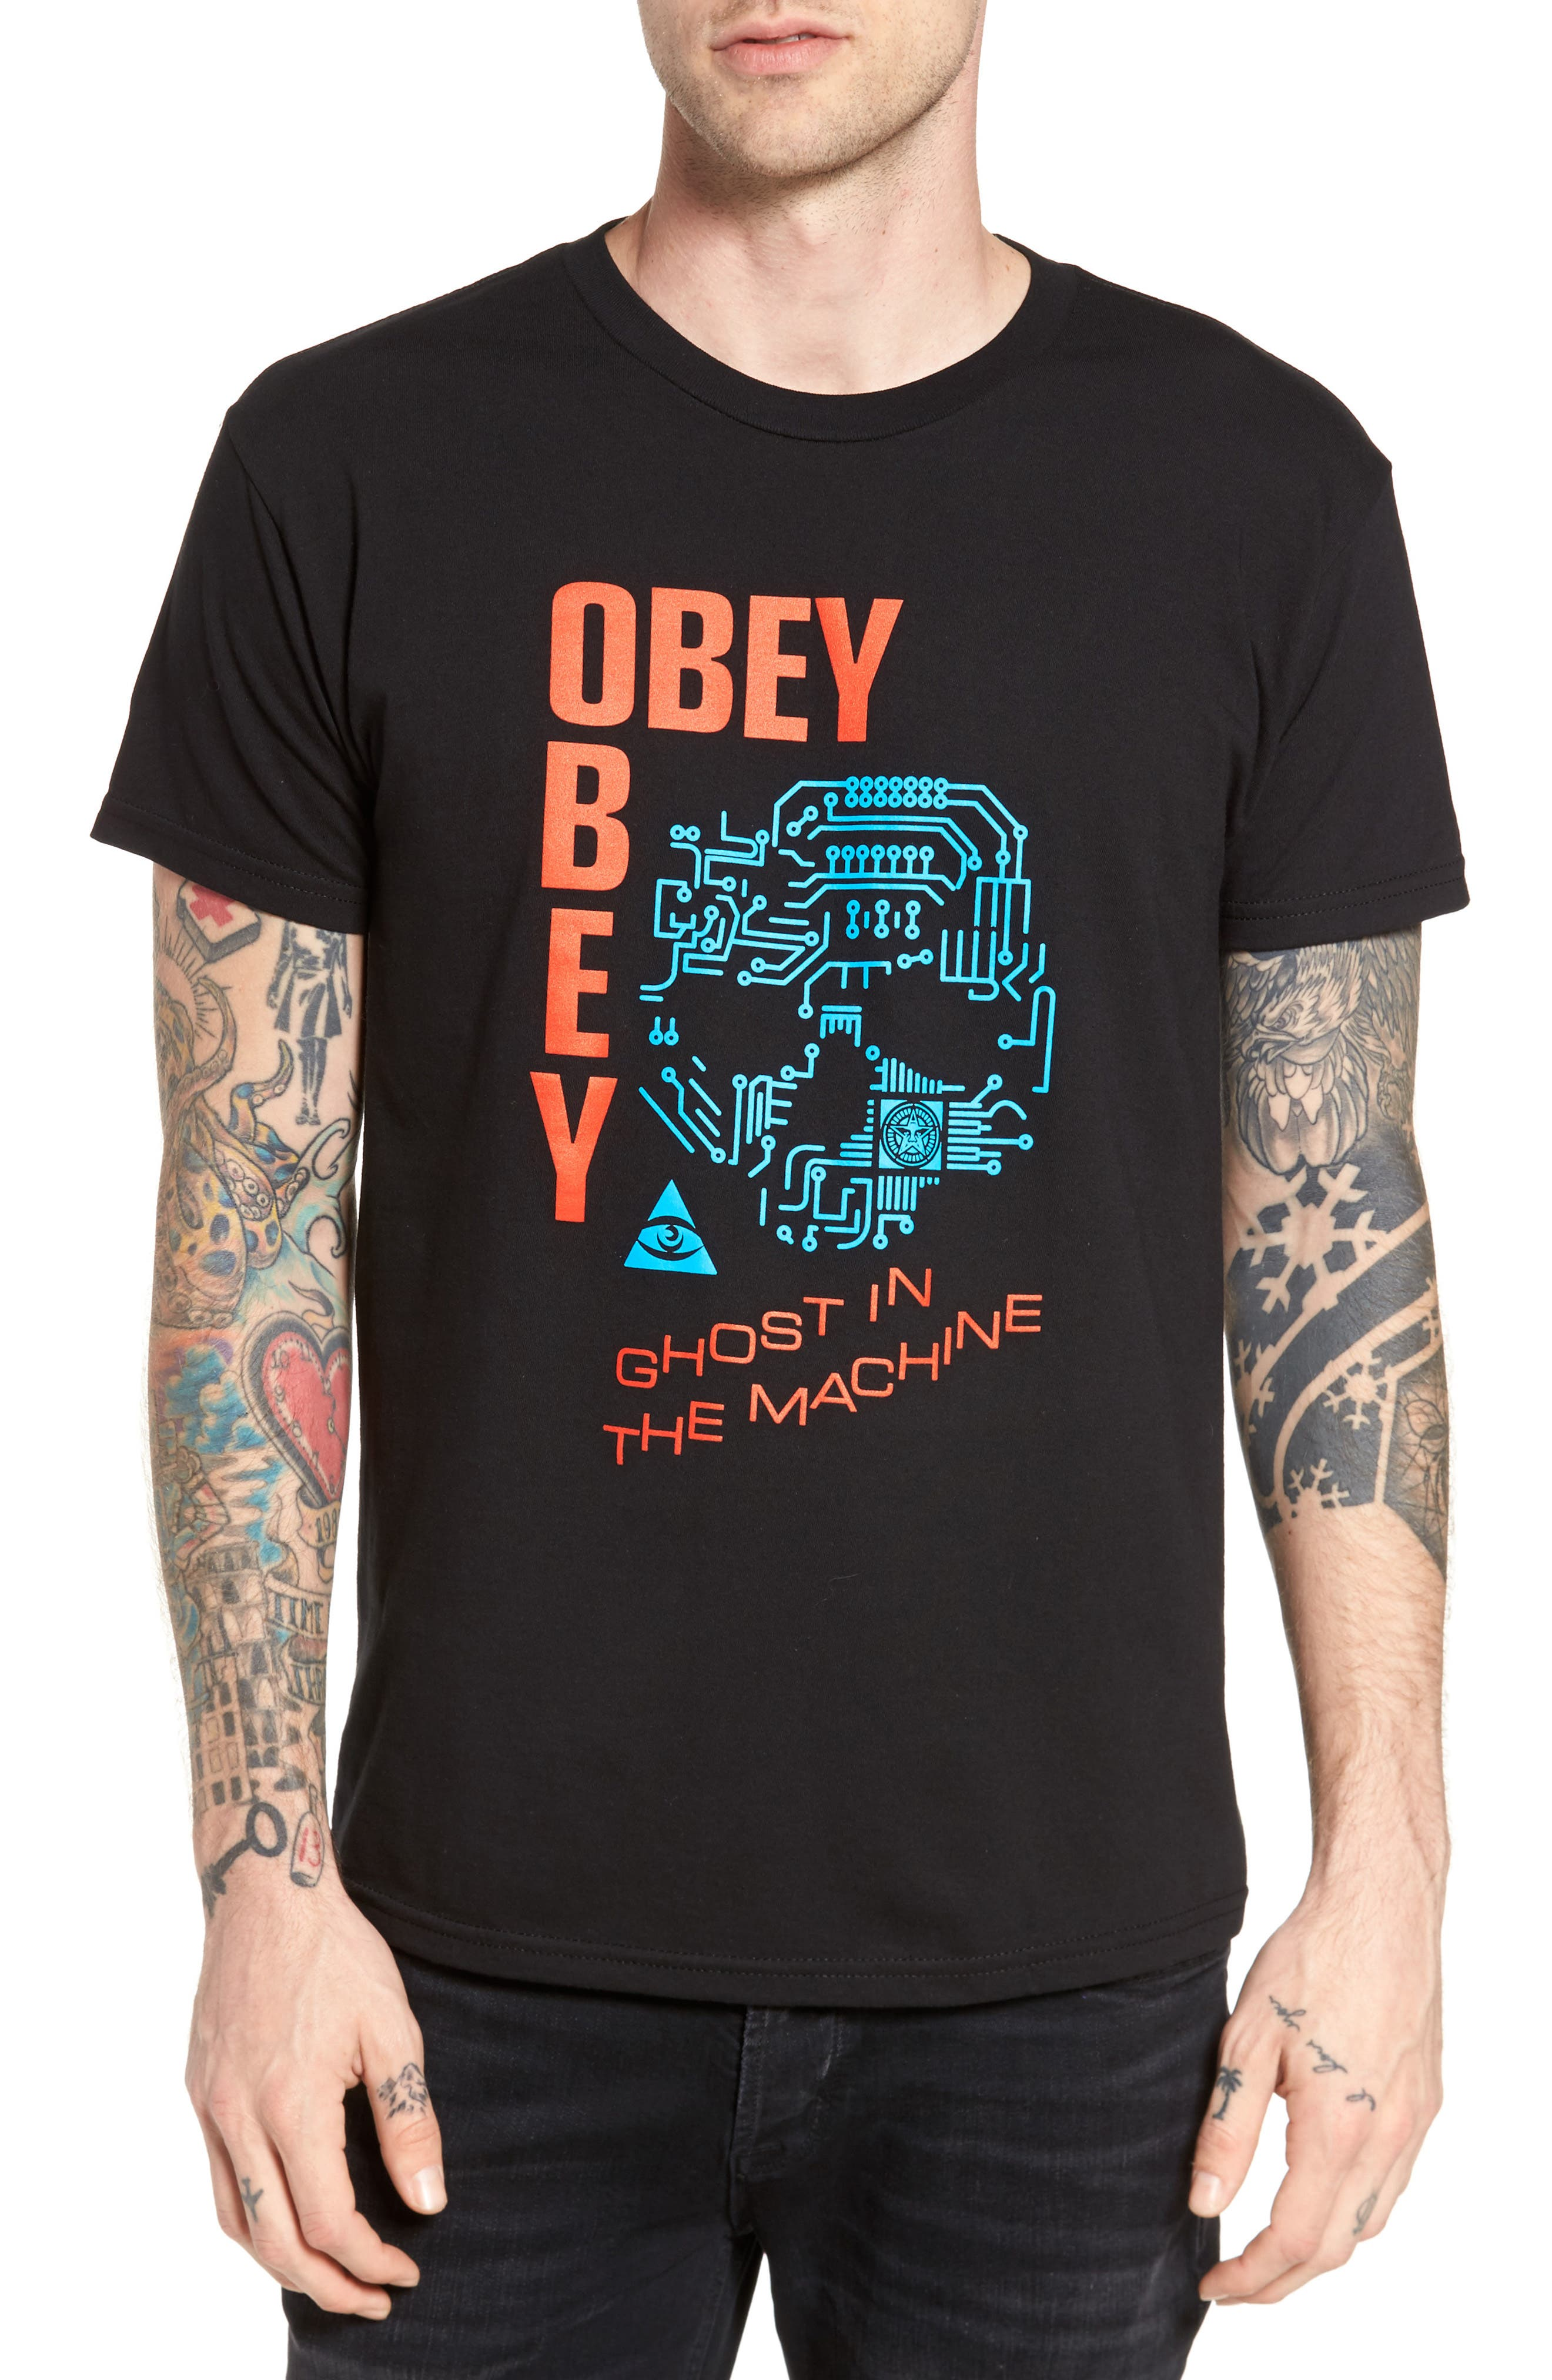 Main Image - Obey Ghosts in the Machine Premium Graphic T-Shirt